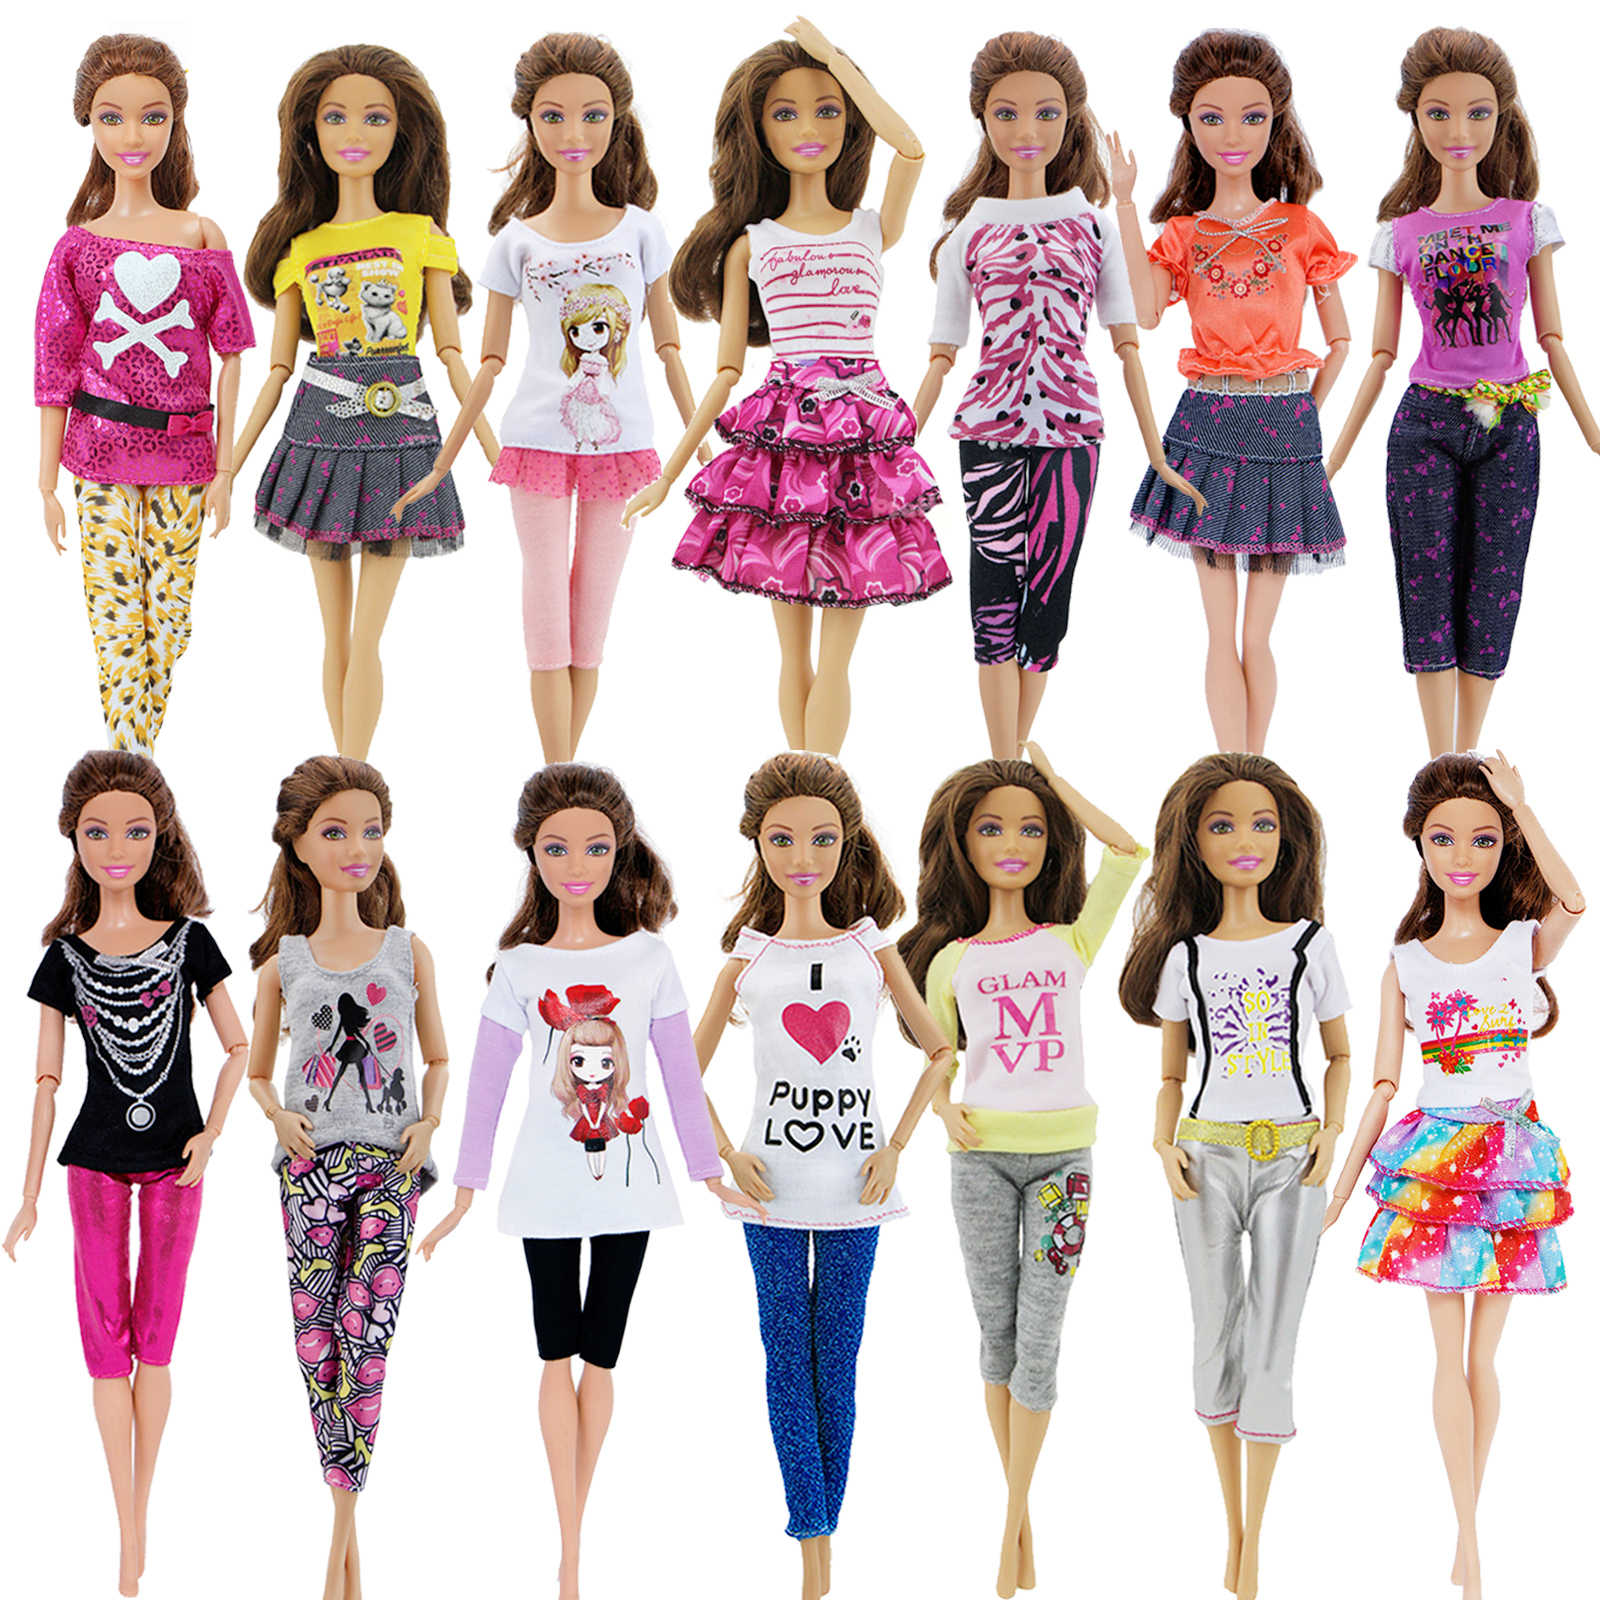 1x Fashion Mix Style Cute Doll Clothes Dress Daily Casual Skirt Shirt Blouse Pants For Barbie Doll Accessories Lovely Girl Toy Aliexpress